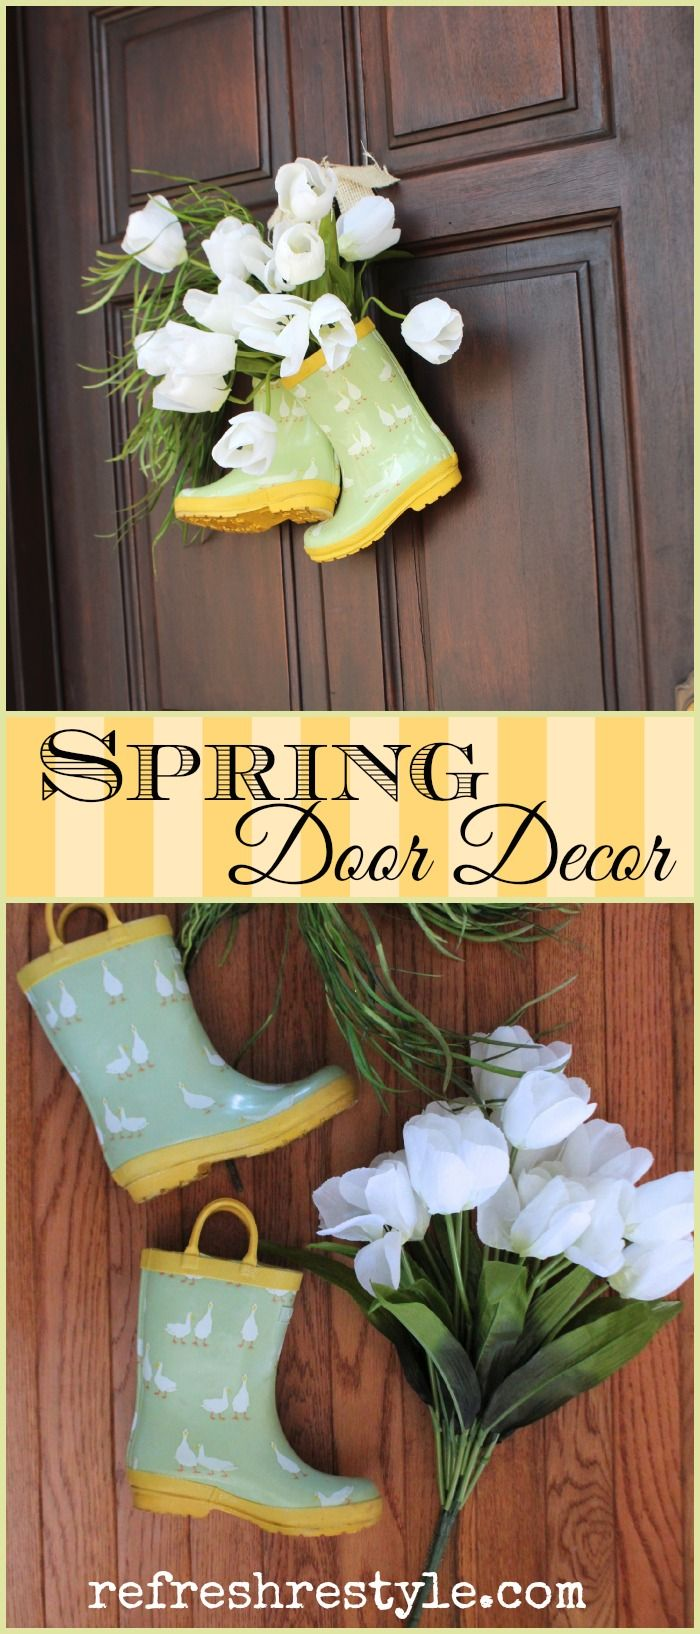 Drop the ordinary wreath for your door and add these cute Rain Boots #Refreshrestyle home decor spring